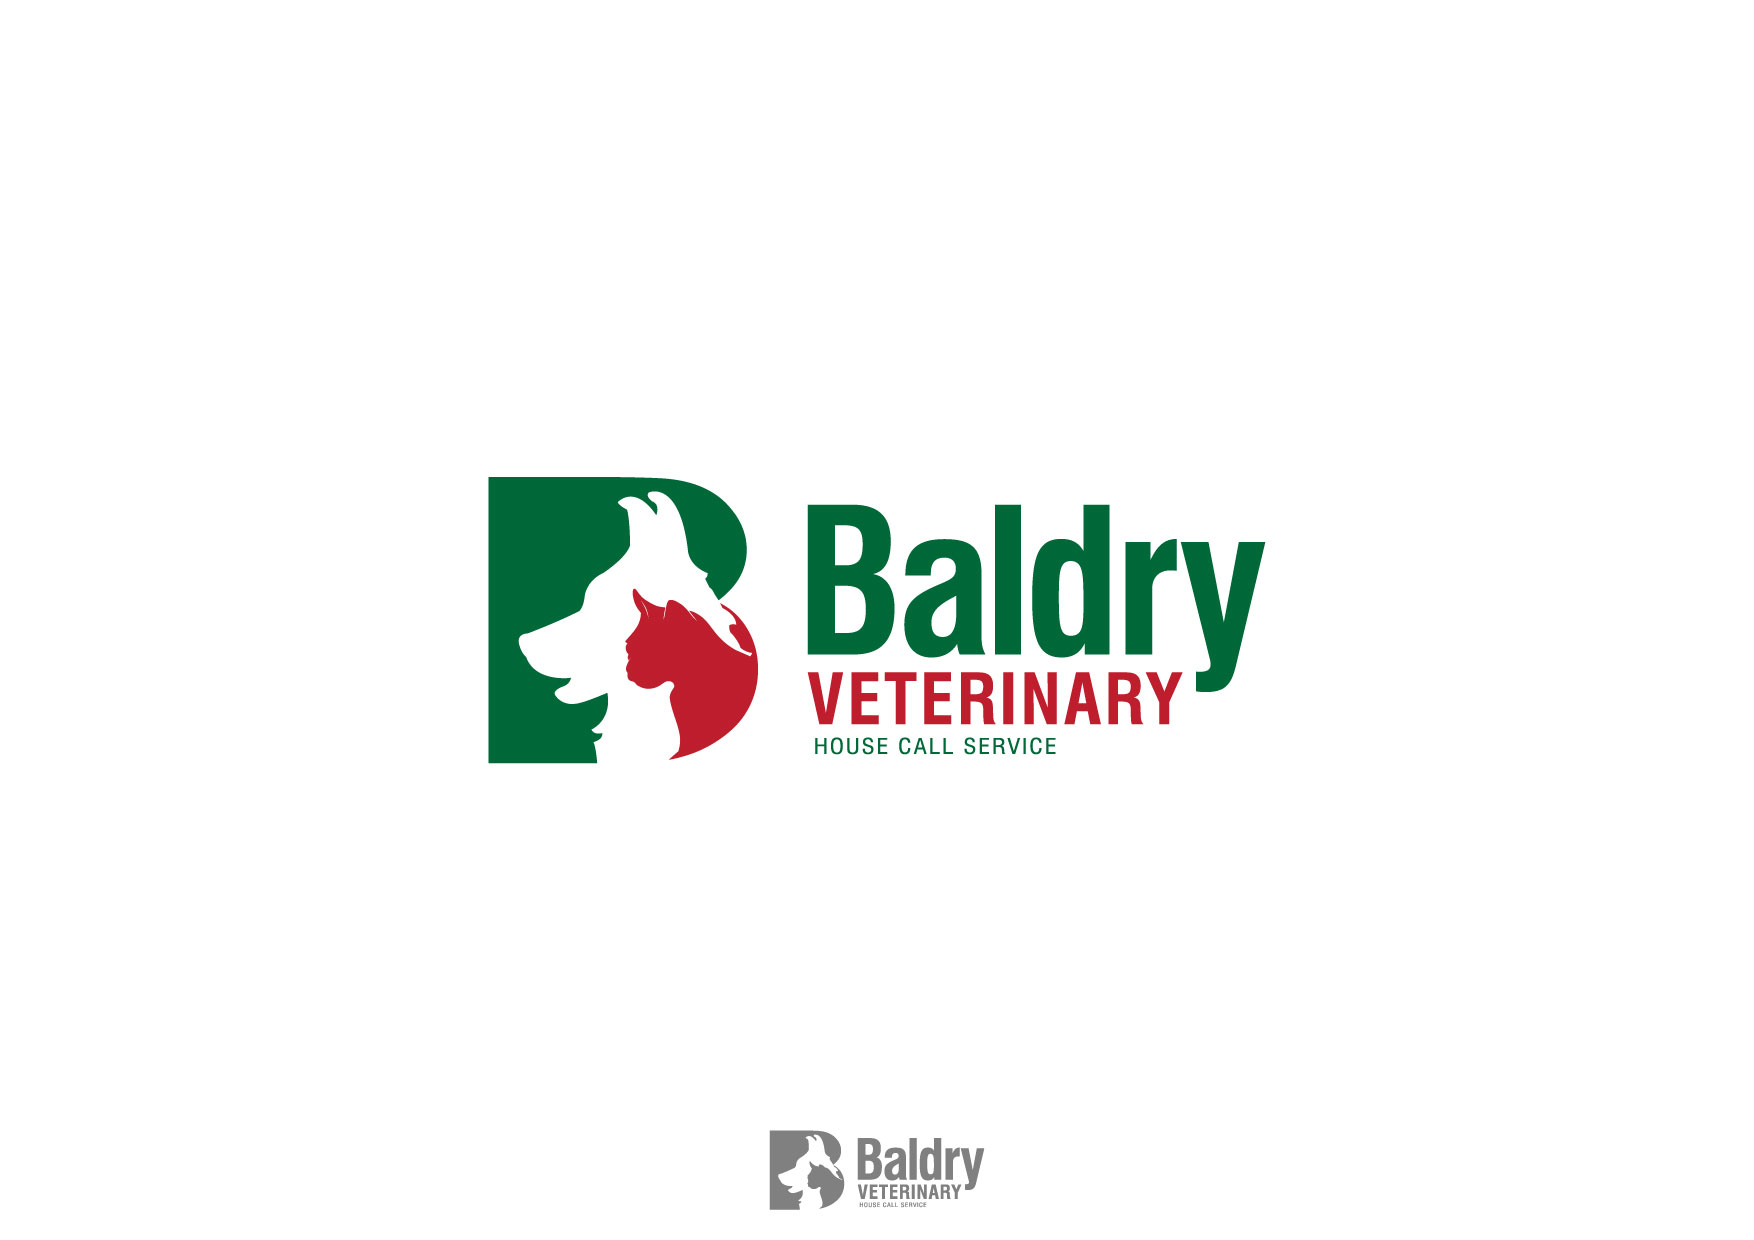 Logo Design by Nurgalih Destianto - Entry No. 32 in the Logo Design Contest Captivating Logo Design for Baldry Veterinary House Call Service.